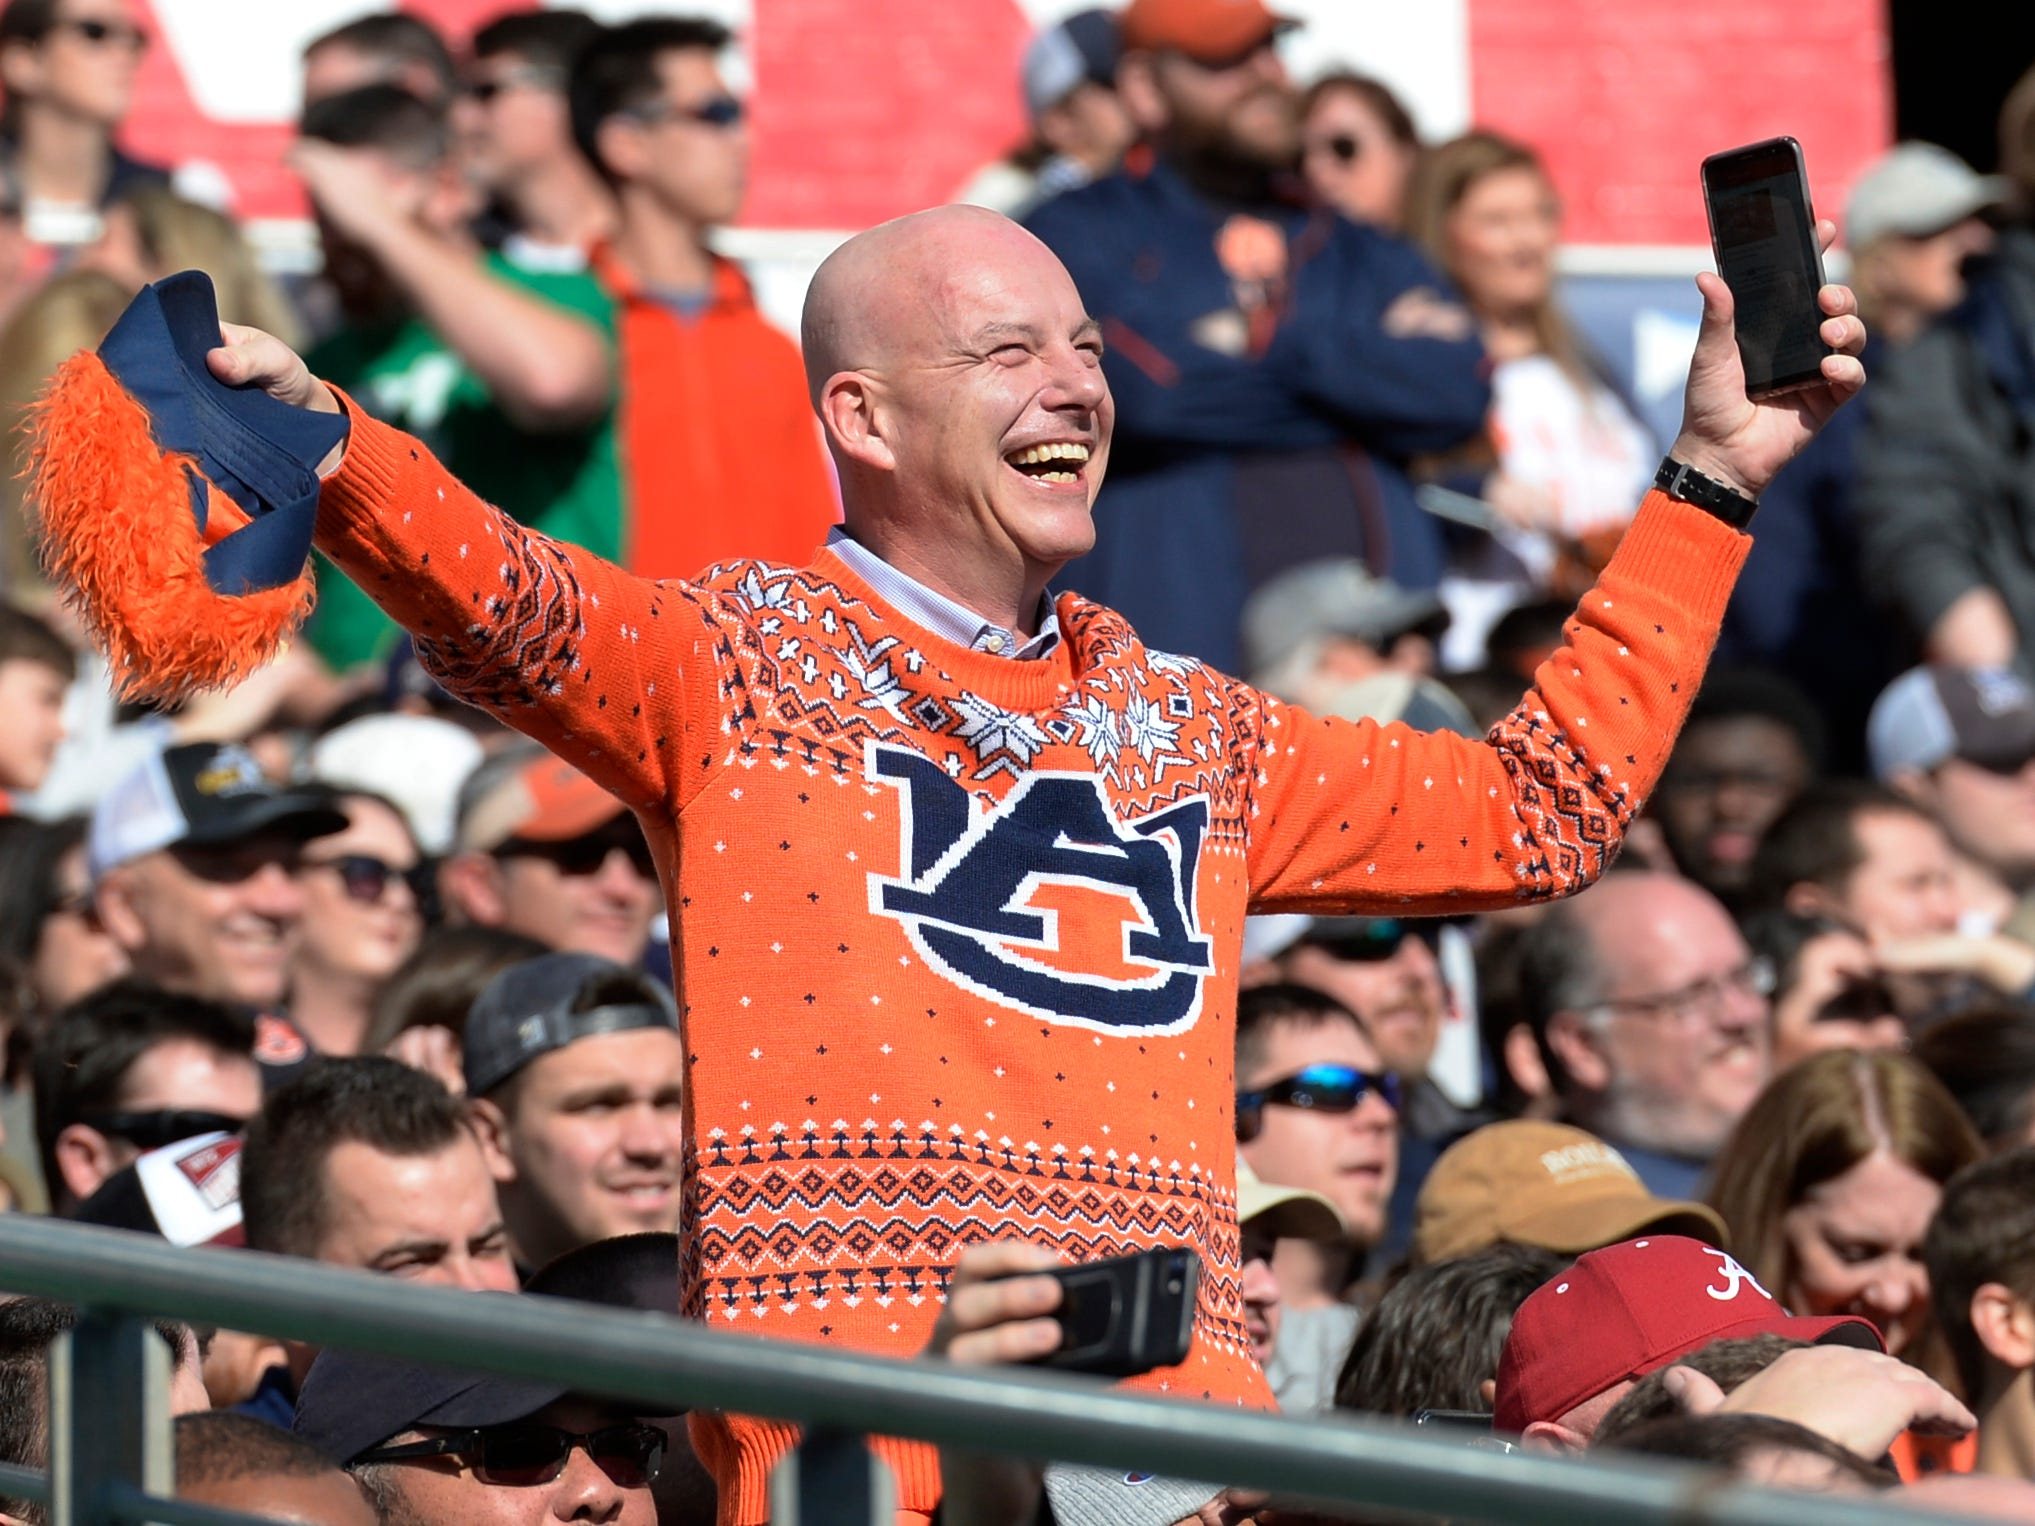 An Auburn fan likes what he sees in the first half of the Music City Bowl NCAA college football game Friday, Dec. 28, 2018, at Nissan Stadium in Nashville, Tenn.